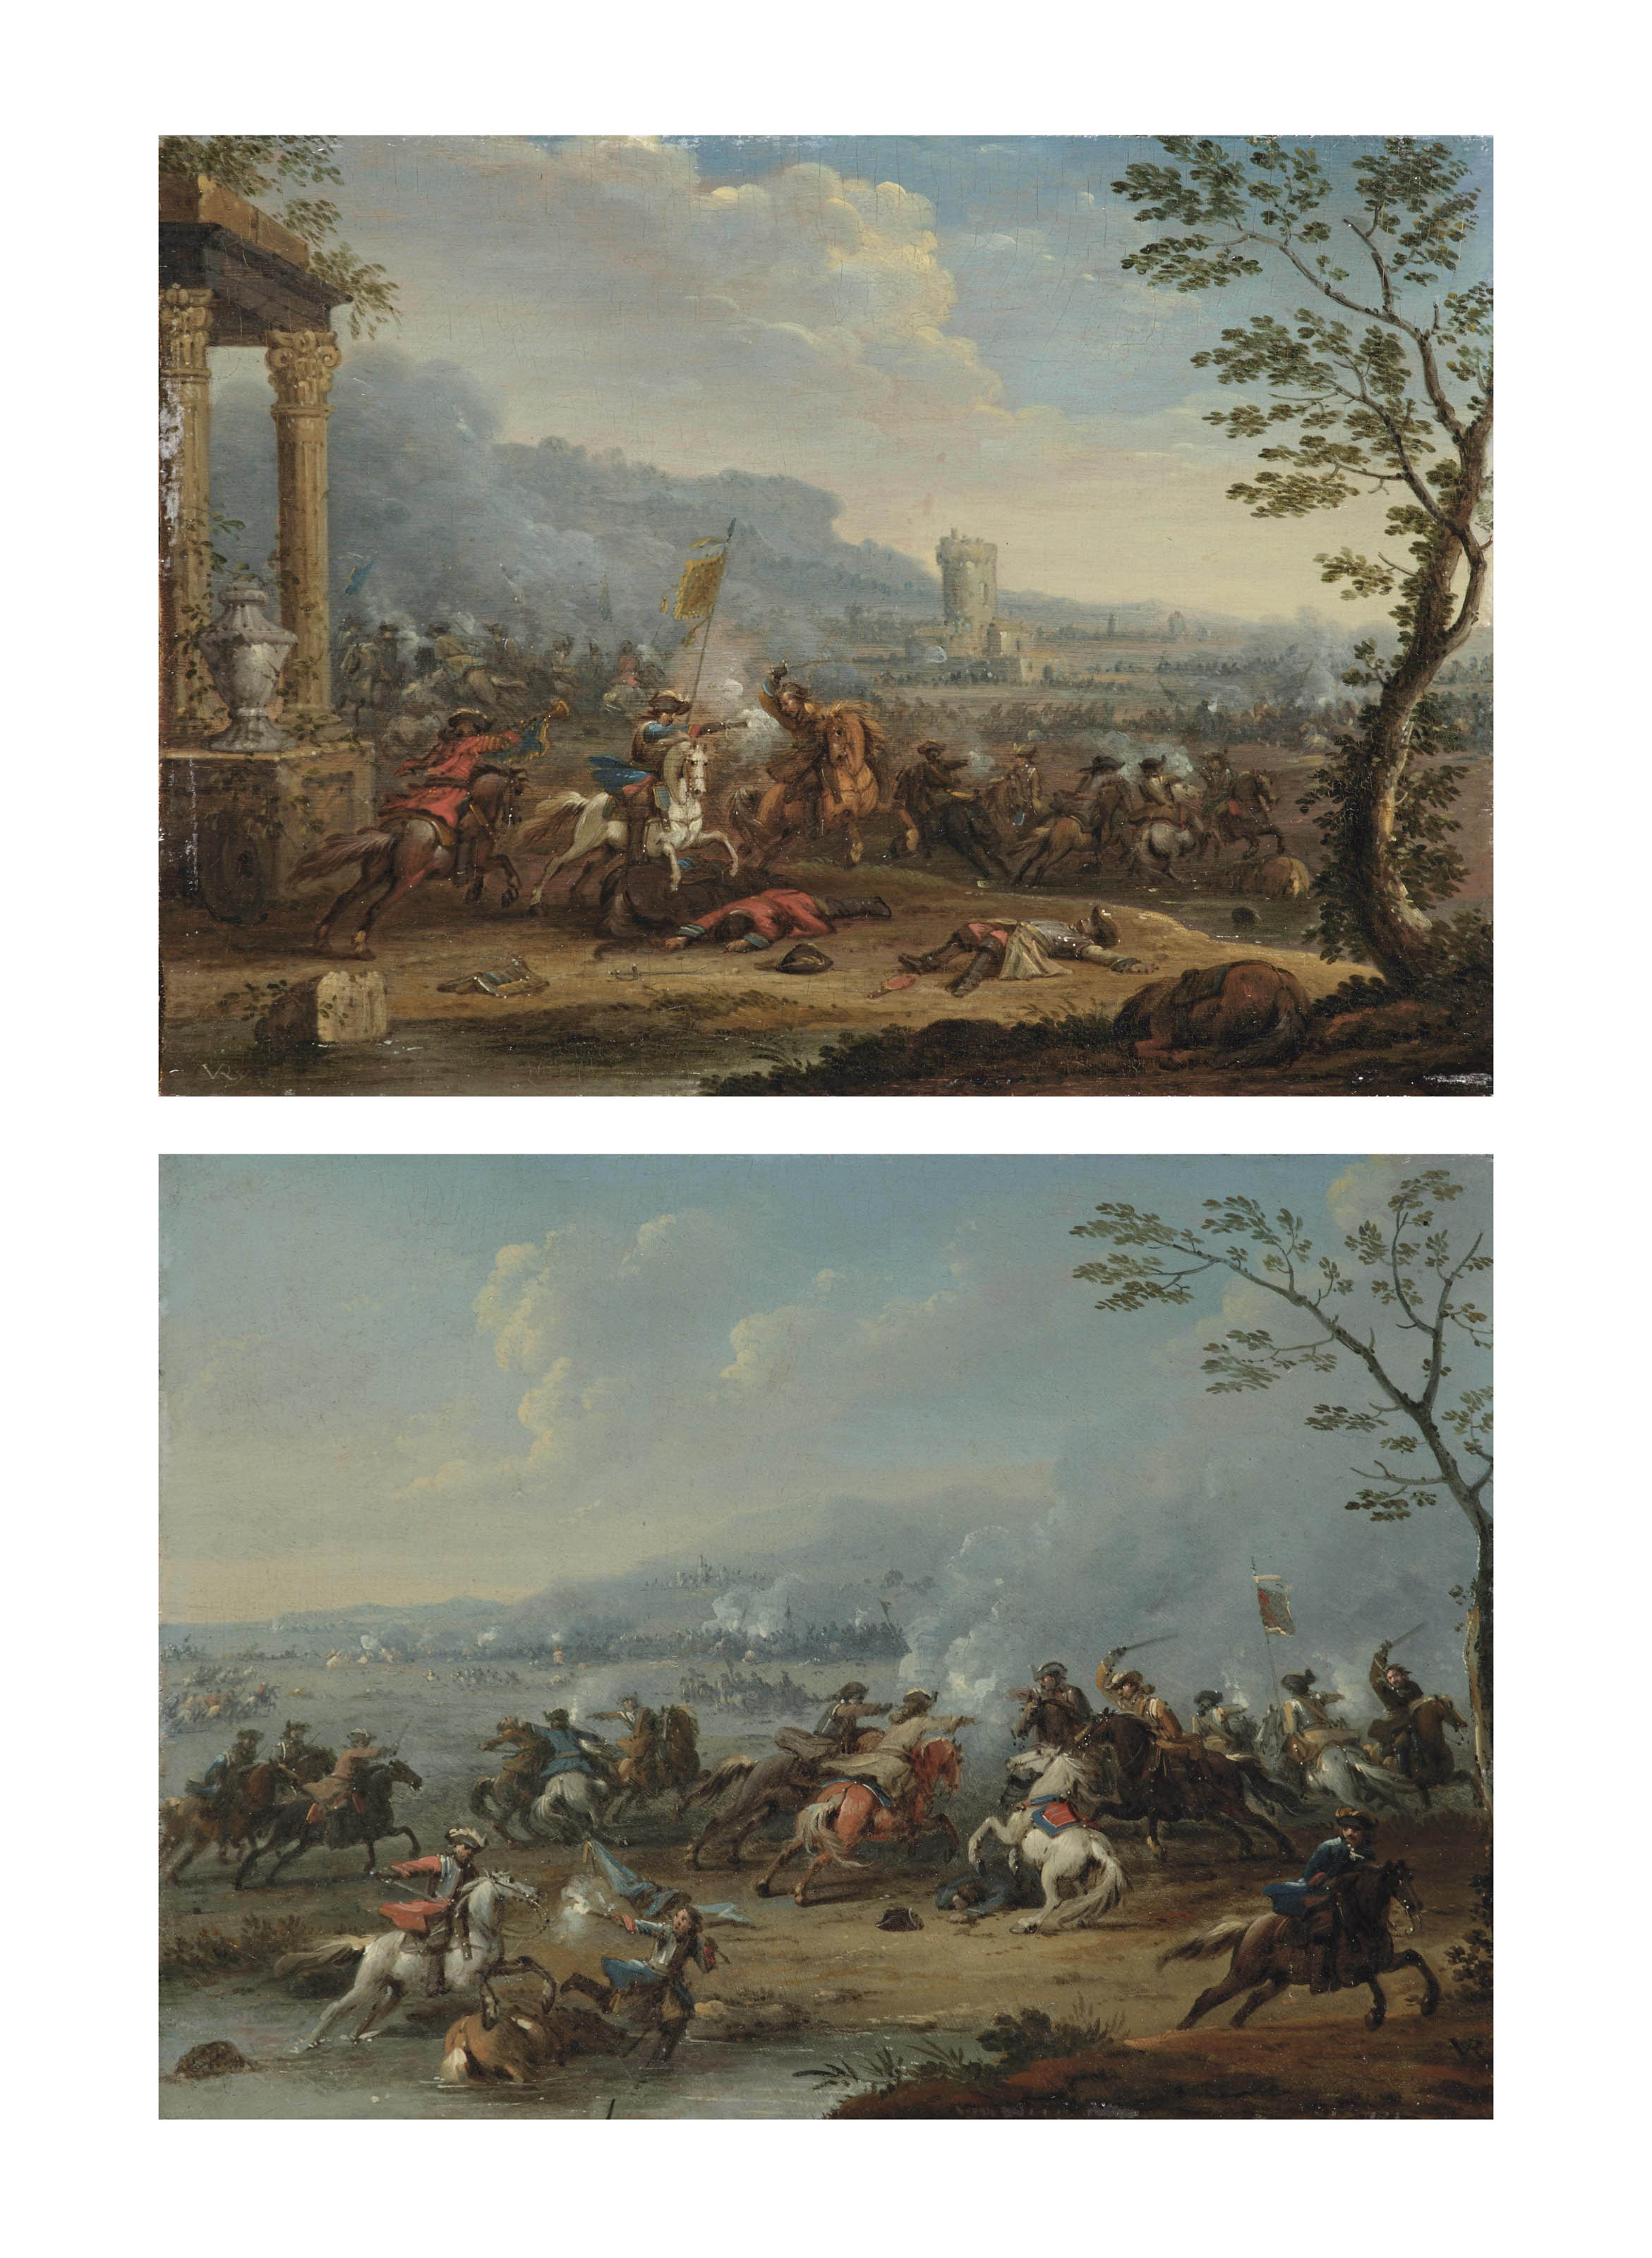 A cavalry skirmish near classical ruins; and A cavalry skirmish in an extensive landscape